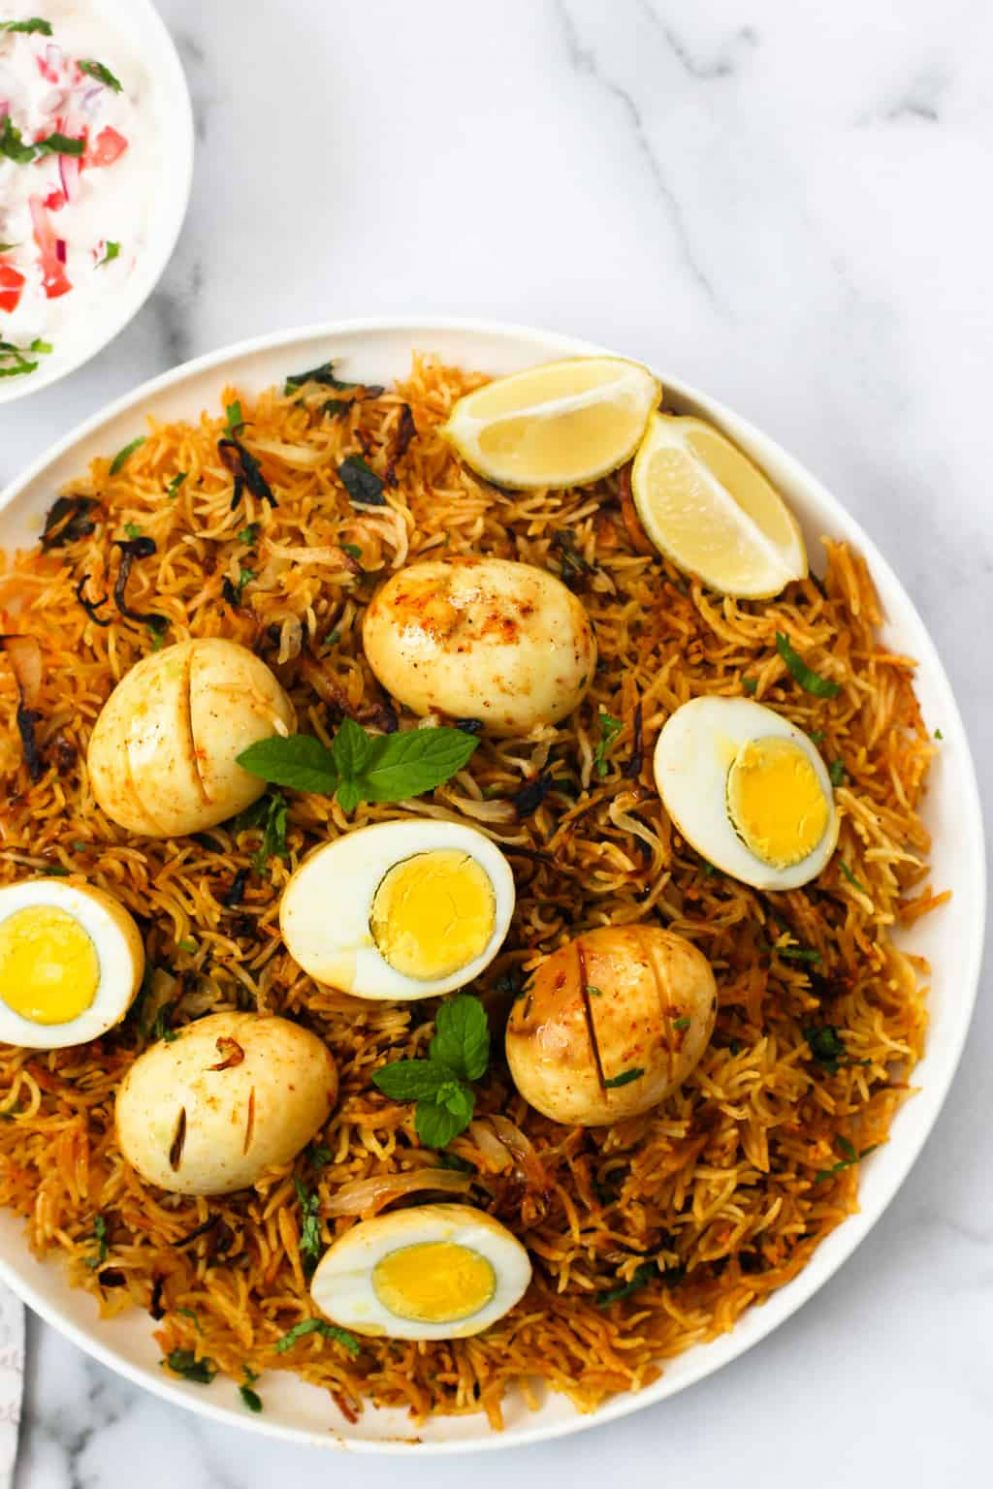 Instant Pot Egg Biryani - Recipes Egg Biryani